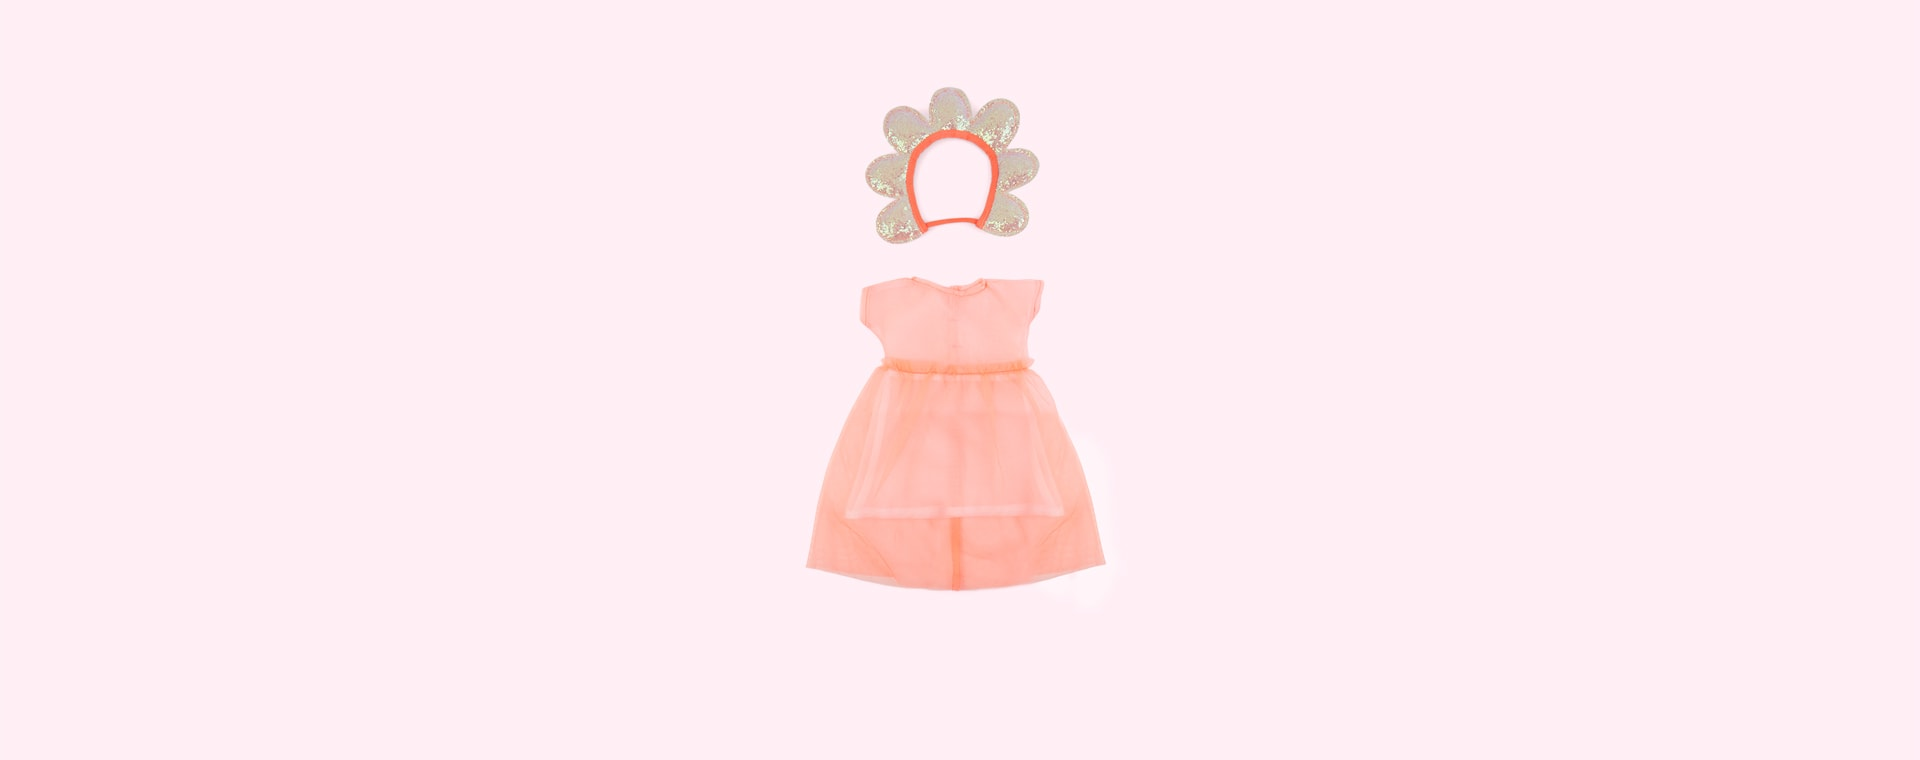 Pink Meri Meri Flower Dolly Dress Up